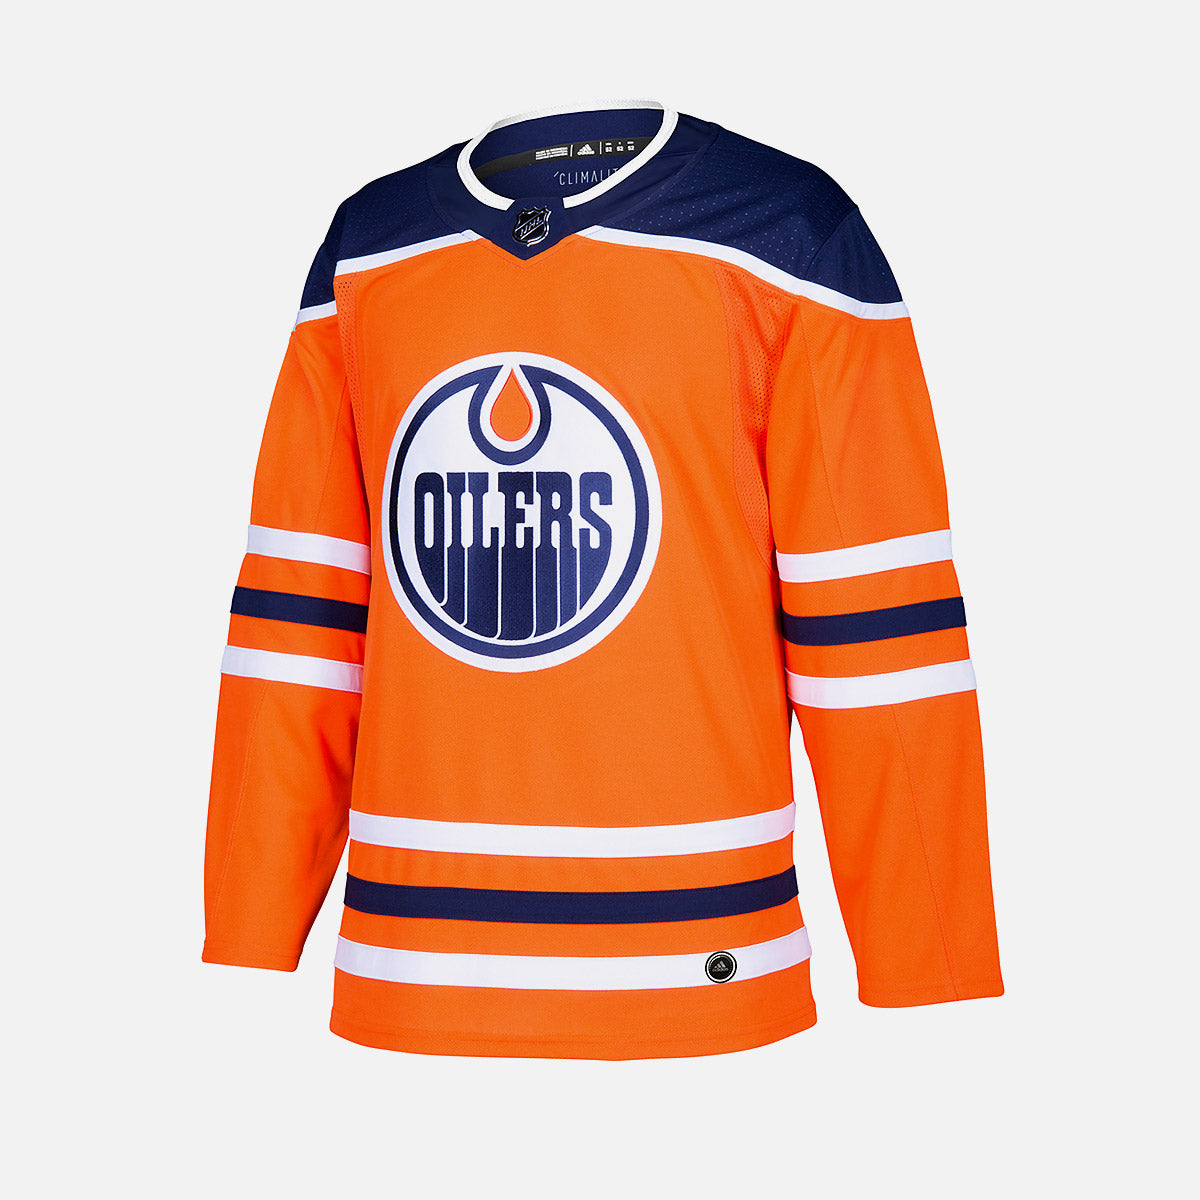 detailed look 0e474 e6893 Edmonton Oilers Adidas Authentic Senior Home Jersey